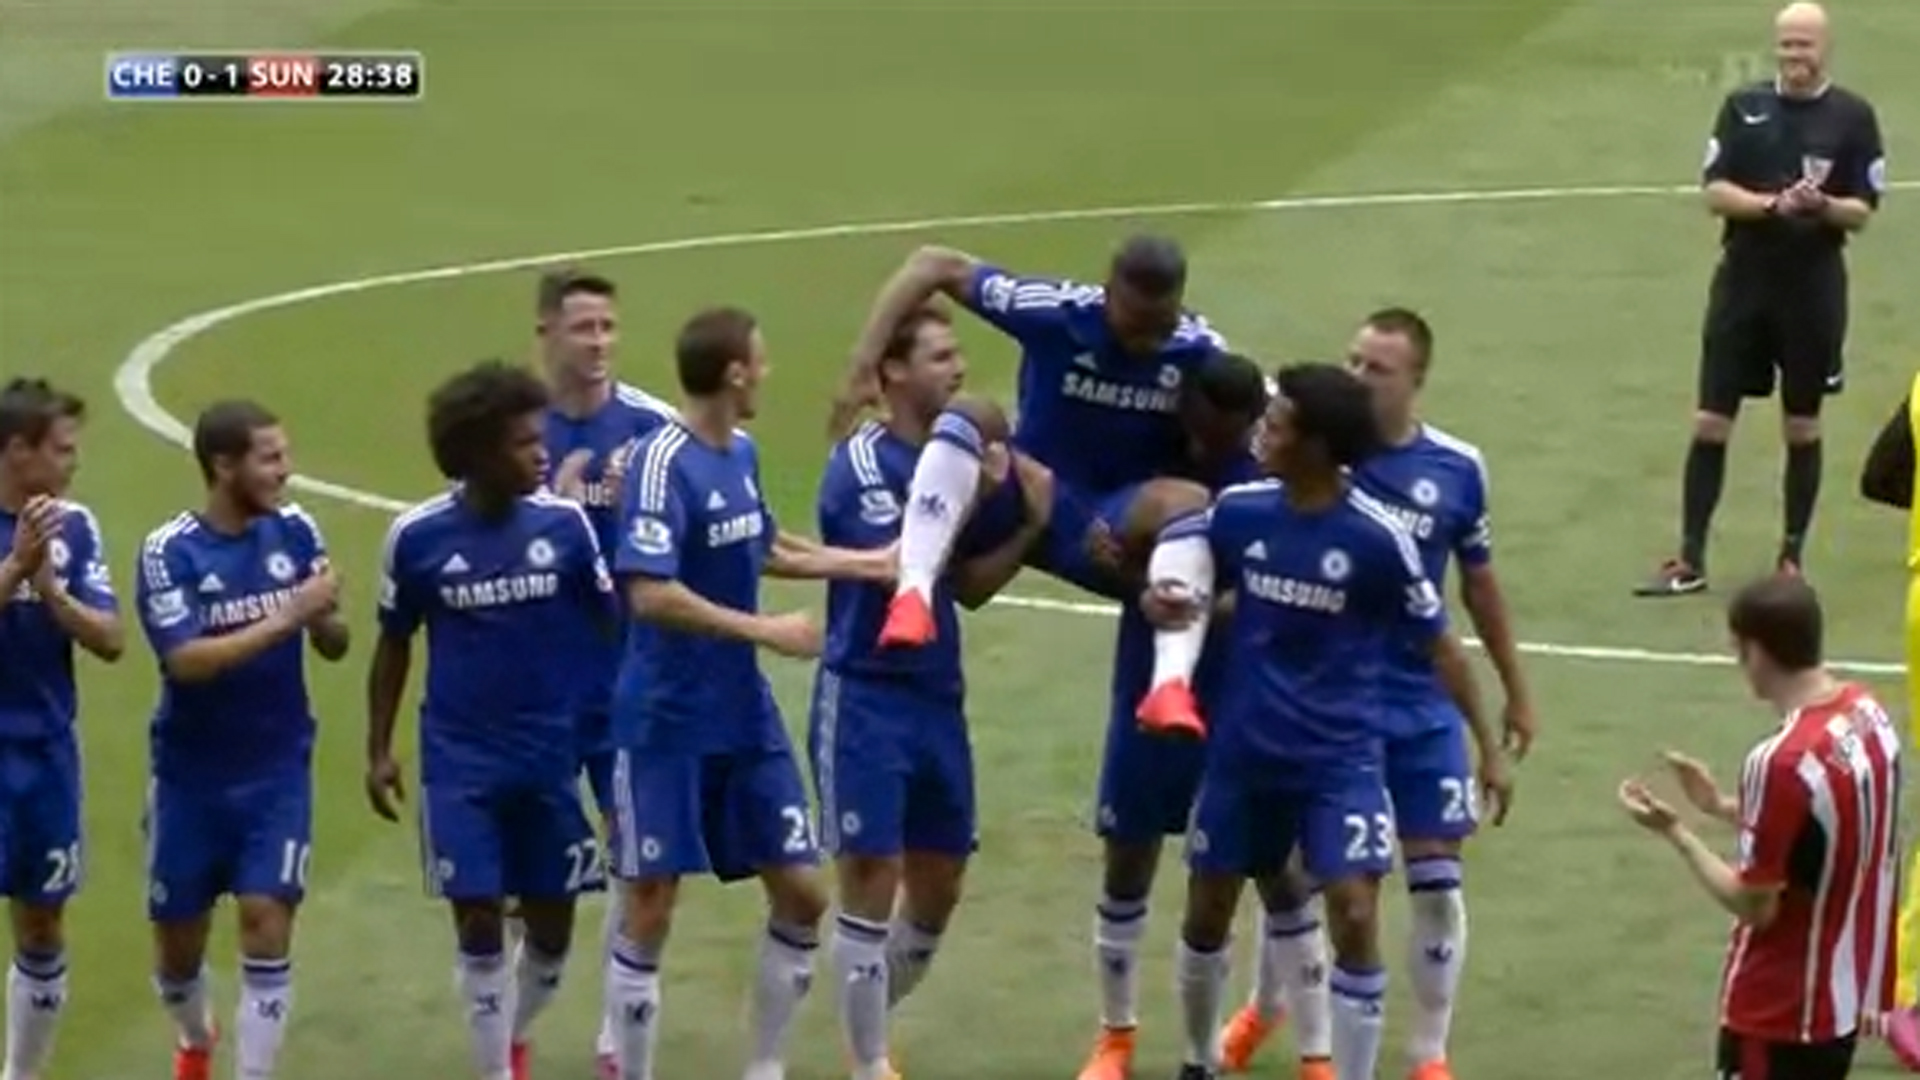 Chelsea teammates carry Didier Drogba off the field in his final match